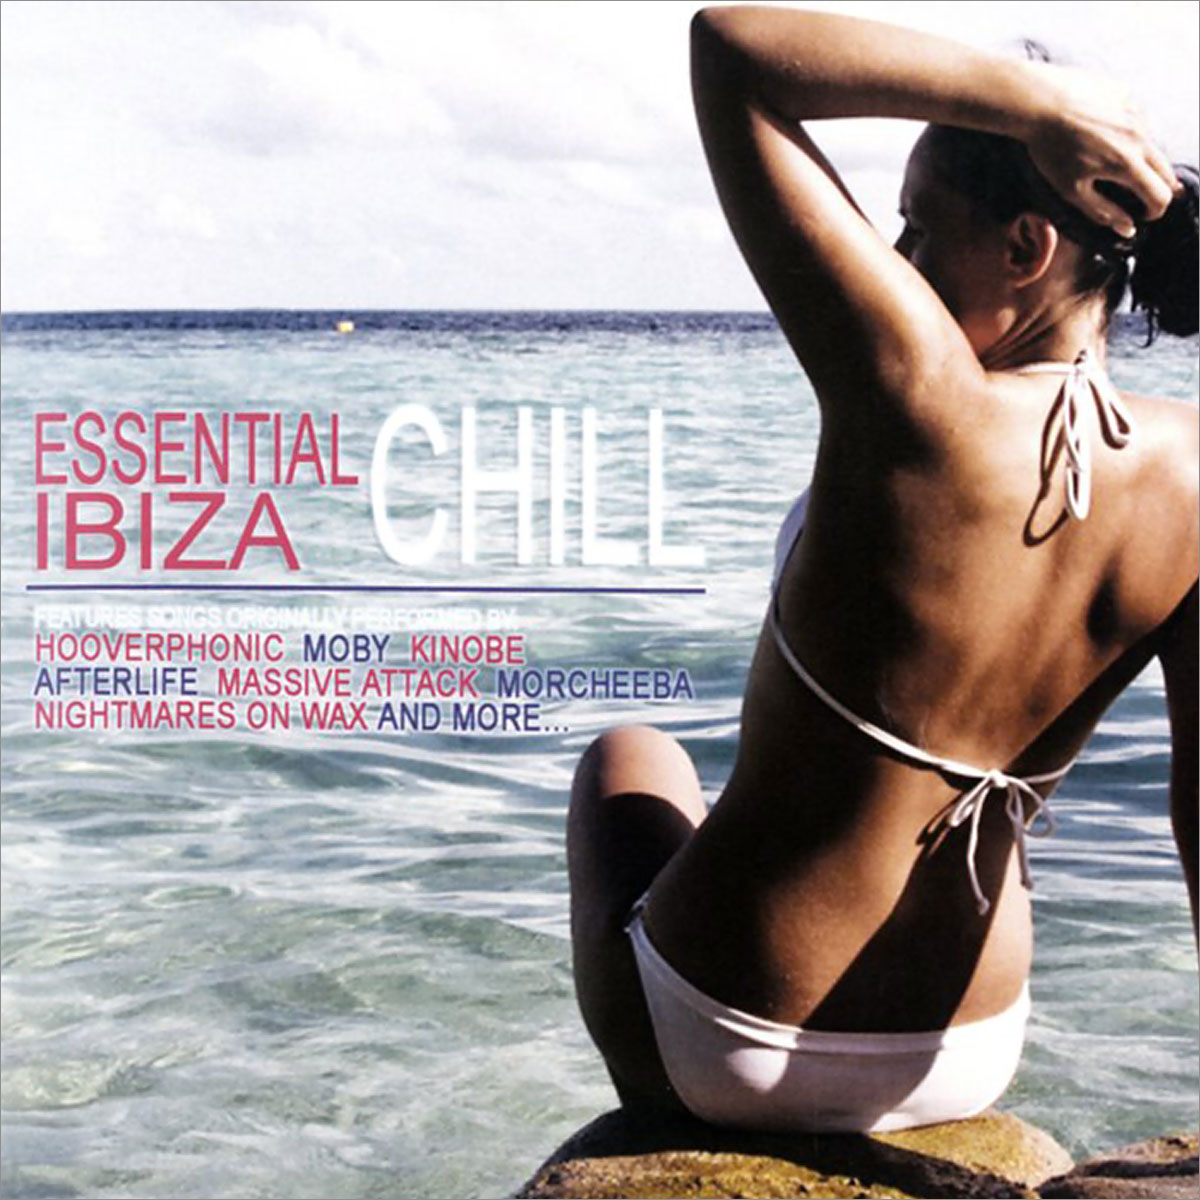 Sandstorm,Beyond Orange,Afterlife,Brickbreaker,Pretz,Press Box,L'artist,Джулия Мессенджер Essential Ibiza Chill полуботинки ecco enrico